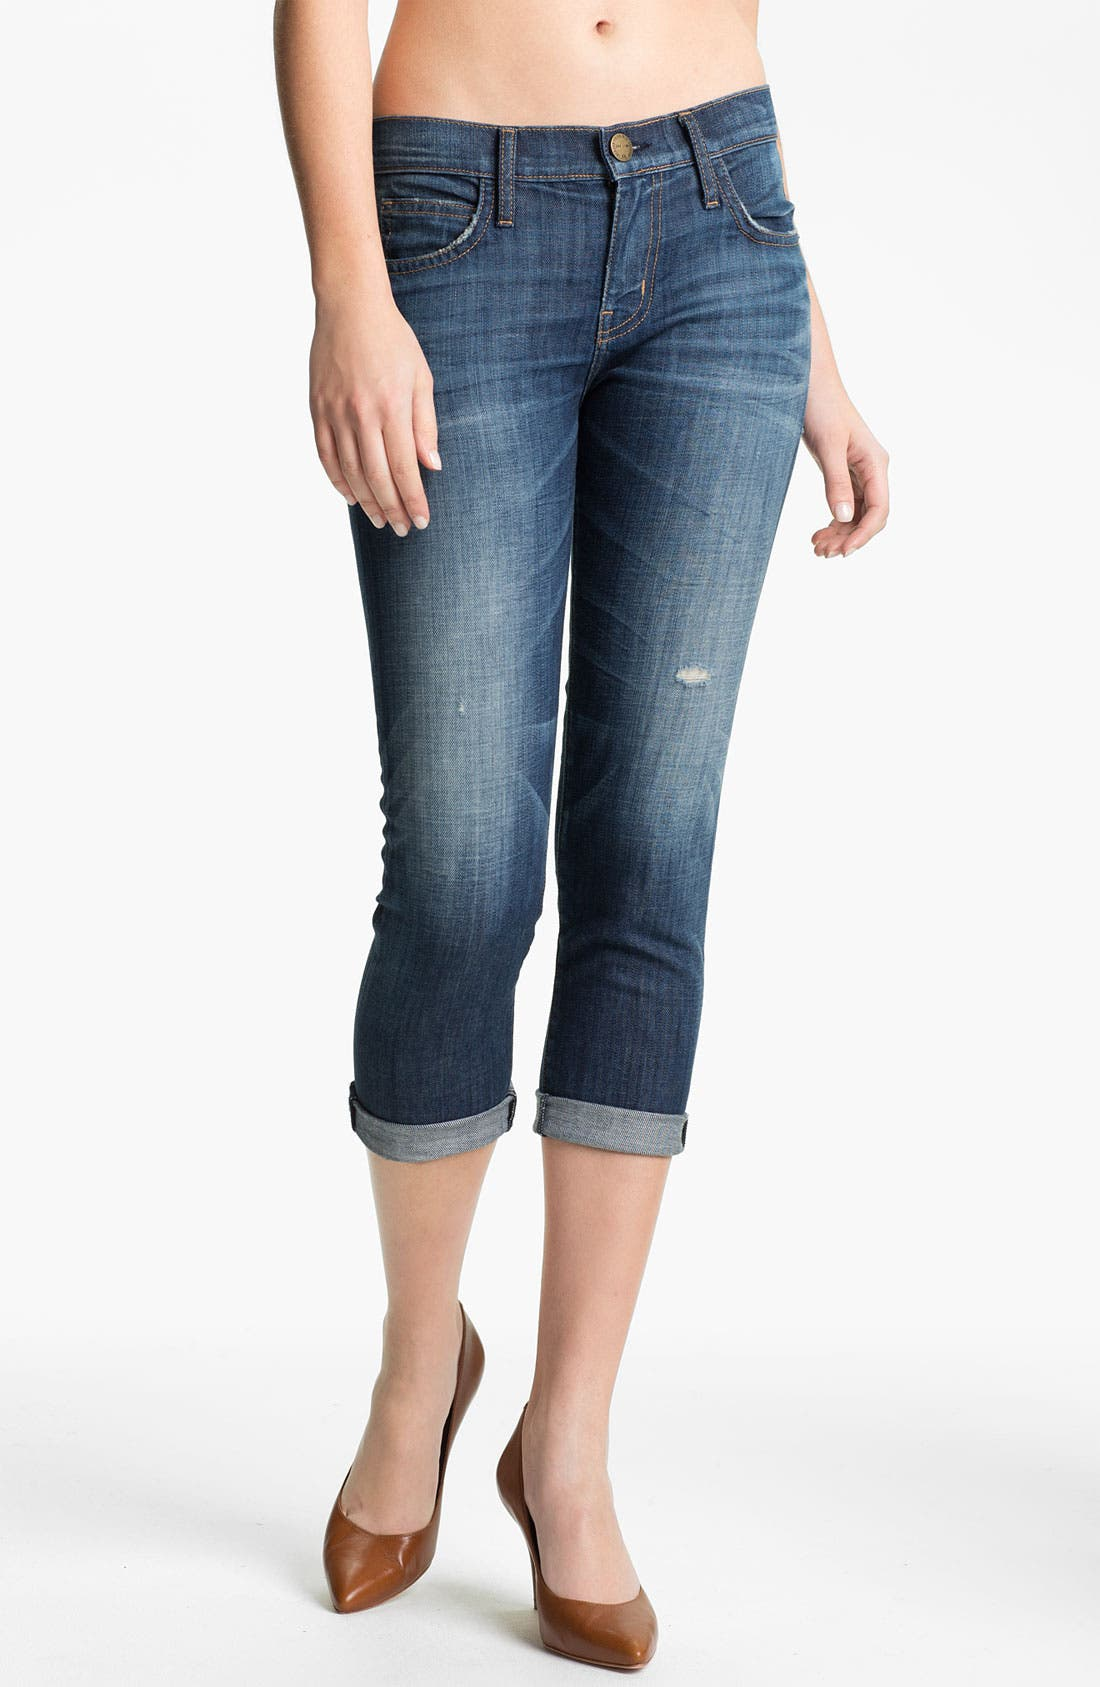 Alternate Image 1 Selected - Current/Elliott 'The Roller' Crop Stretch Jeans (Wildcard with Destroy)